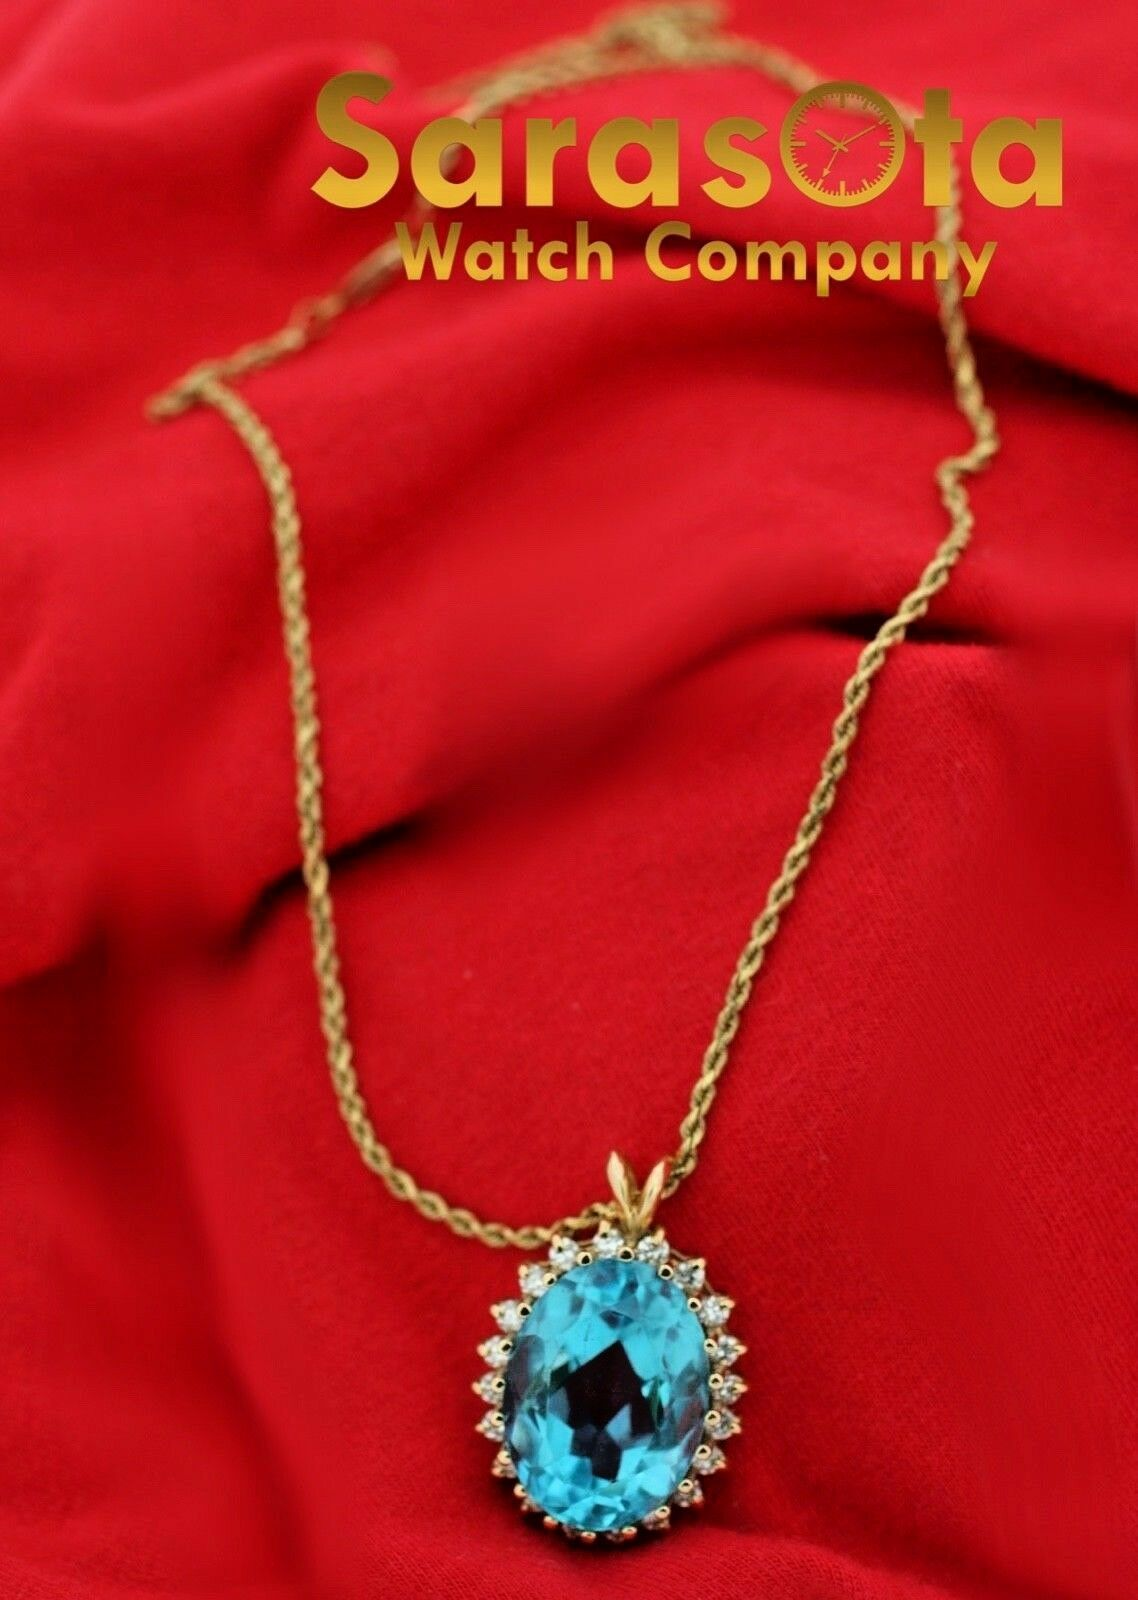 14k Yellow Gold Oval Halo Blue Topaz Diamonds Pendant Rope Chain 18 Necklace 132865254772 2